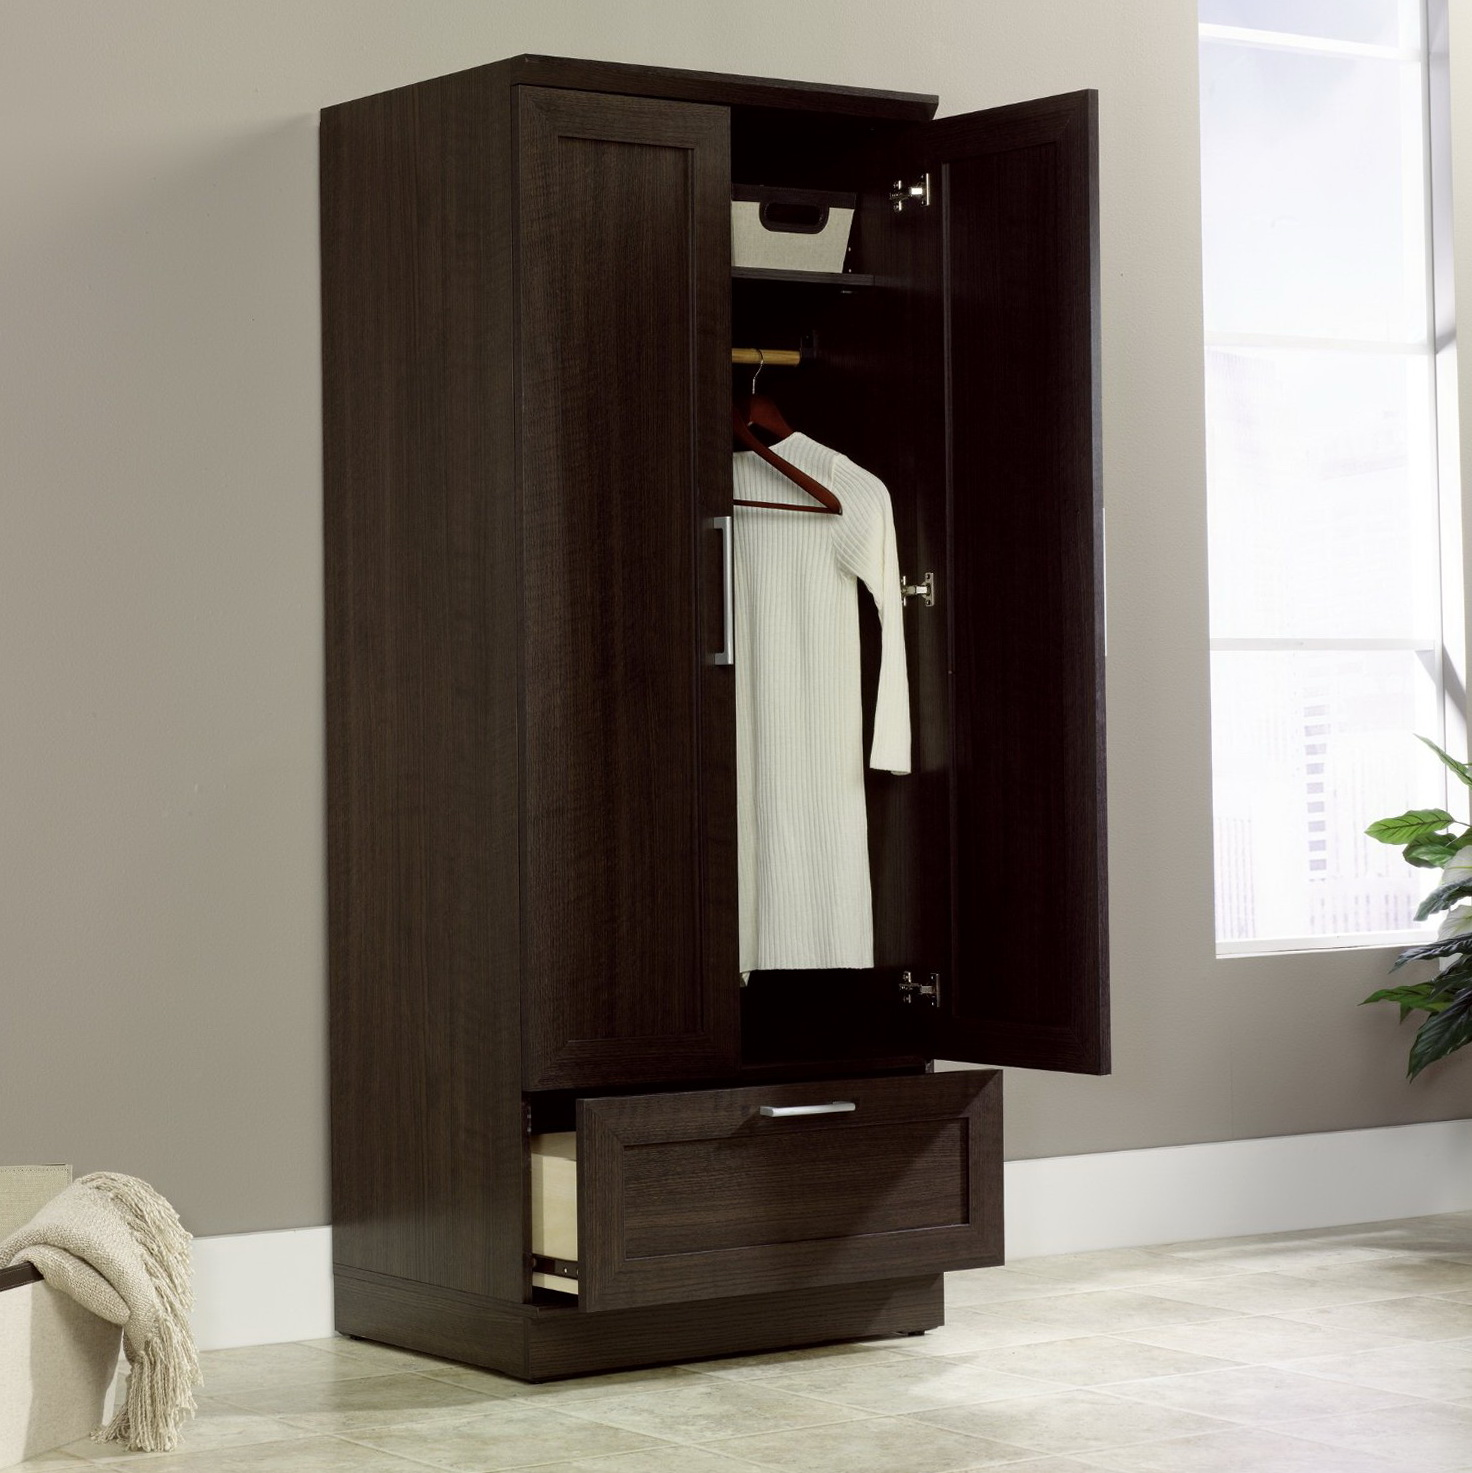 home ideas cheap wardrobe ga closet ikea outstanding portable design affordable and closets aaoivj smashing doors